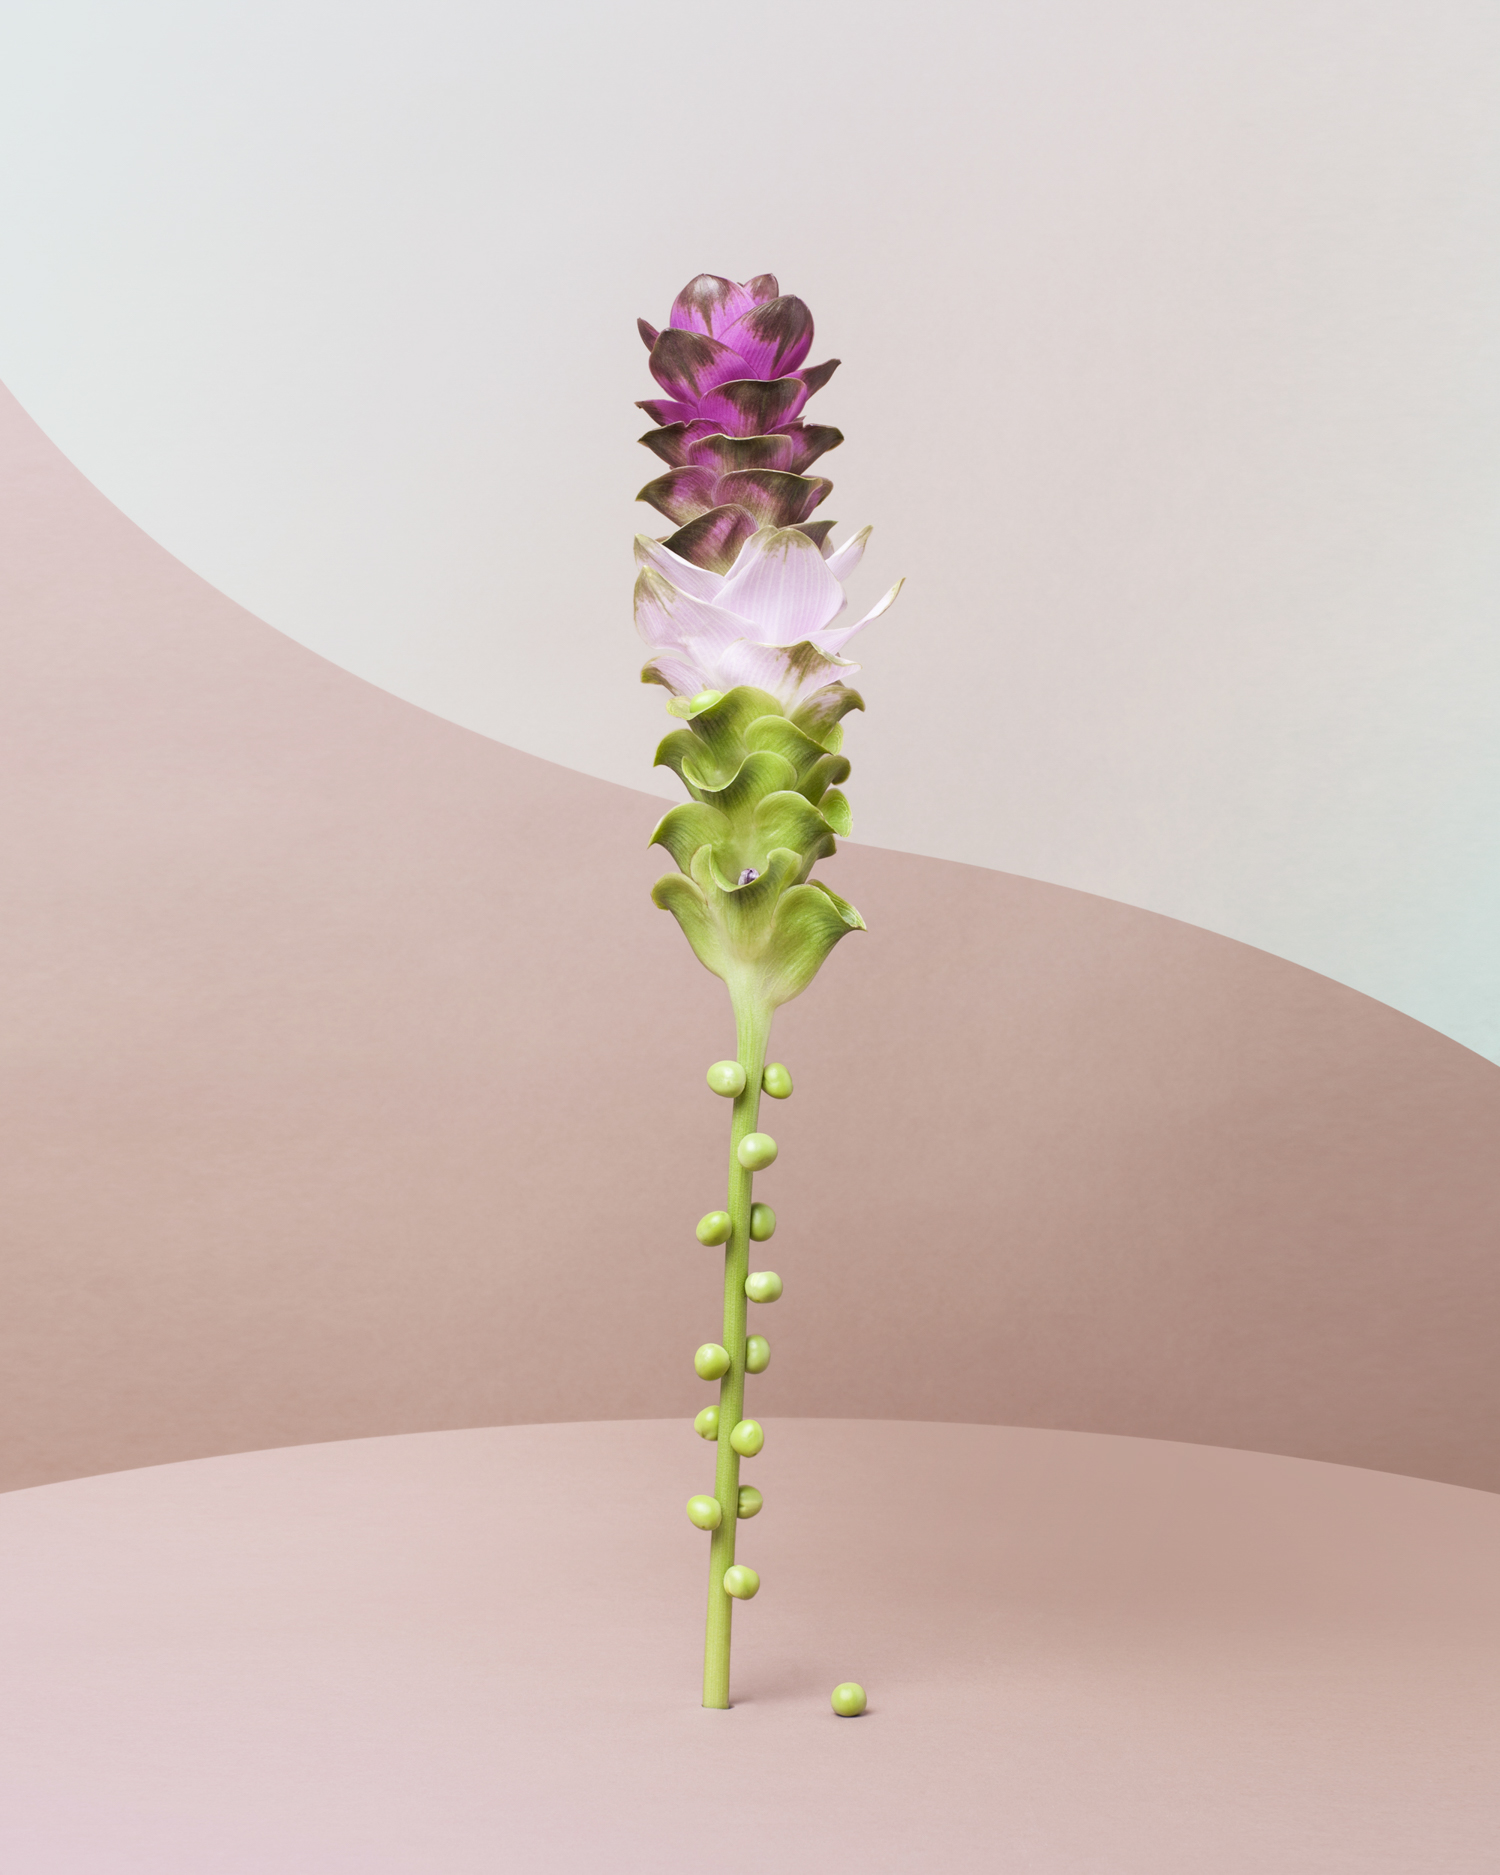 Tall Flower with peas